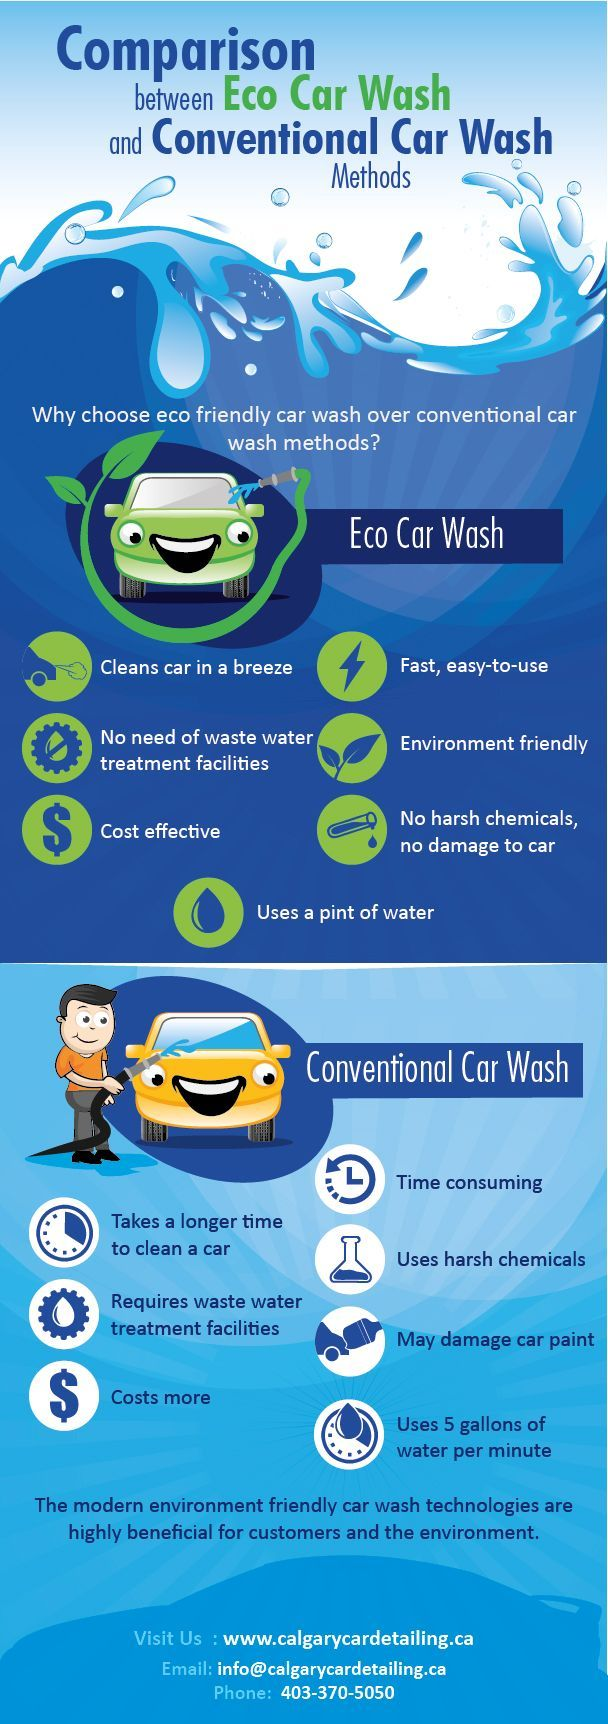 This infographic http://www.calgarycardetailing.ca/blog/comparison-between-eco-car-wash-and-conventional-car-wash-methods/ highlights the benefits of environment friendly car wash technologies over conventional #car #wash methods.